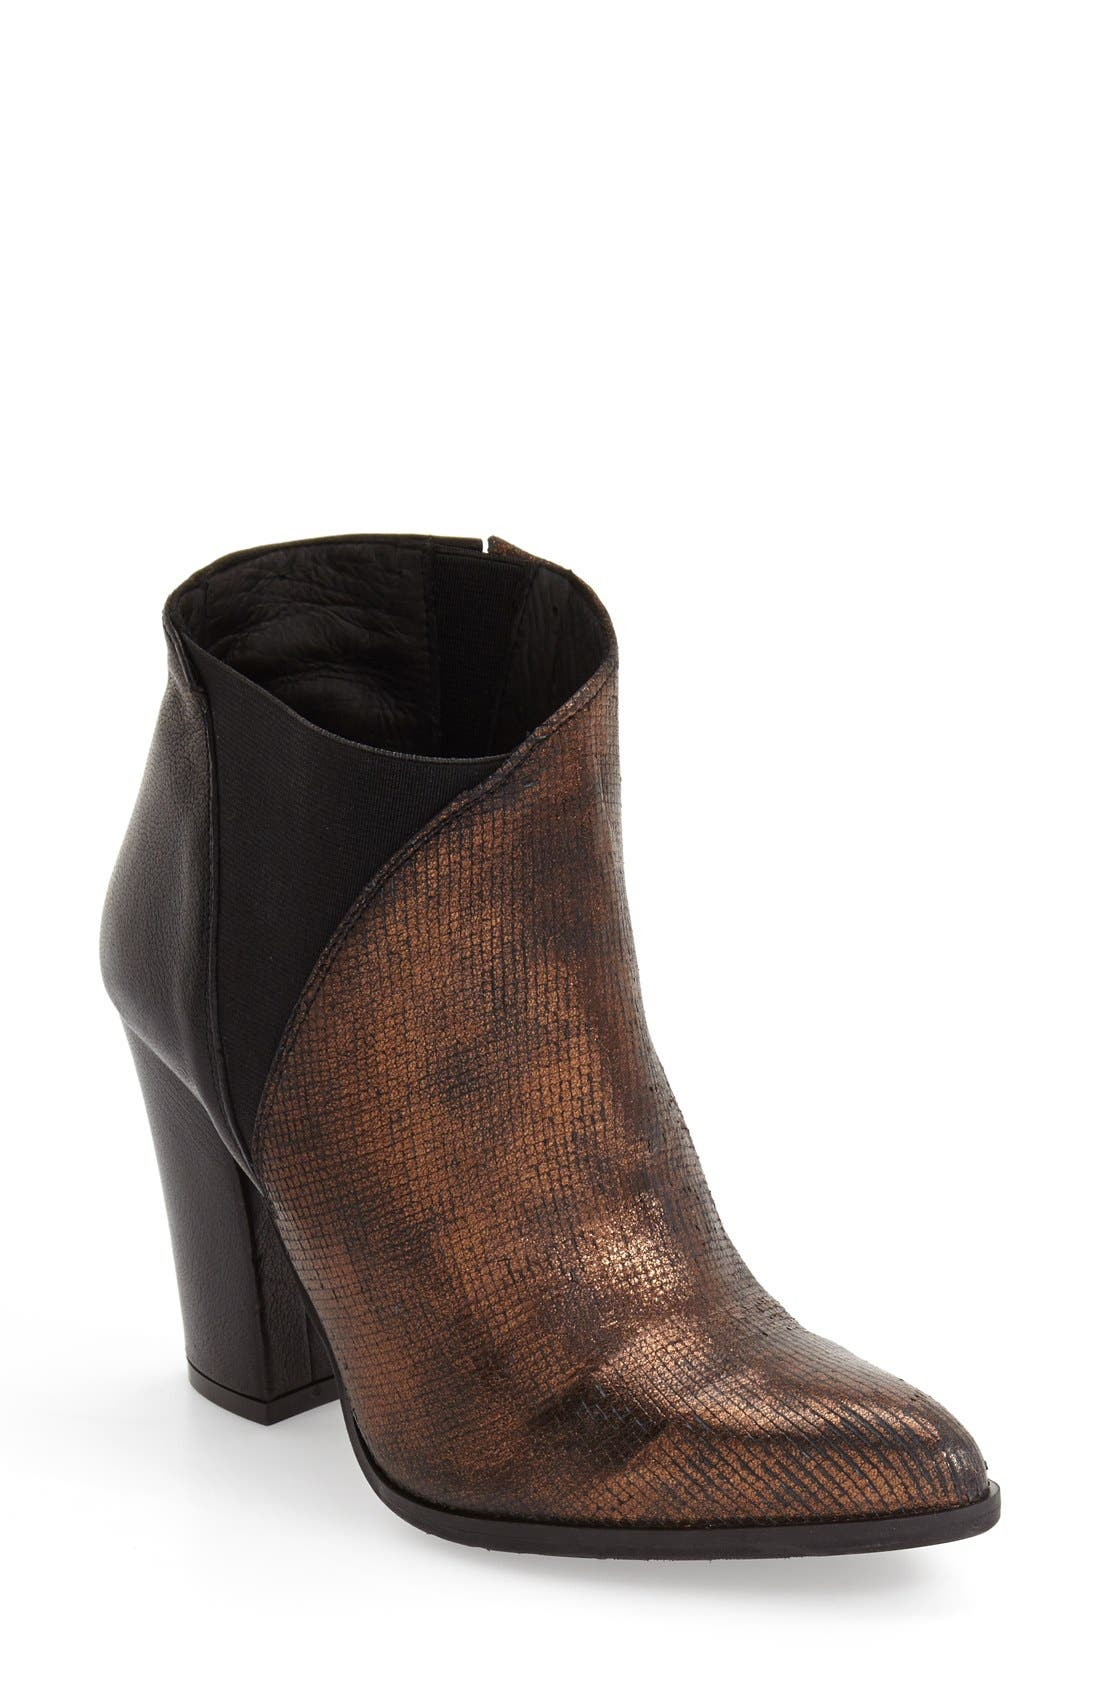 Alternate Image 1 Selected - Charles David 'Charla' Bootie (Women)